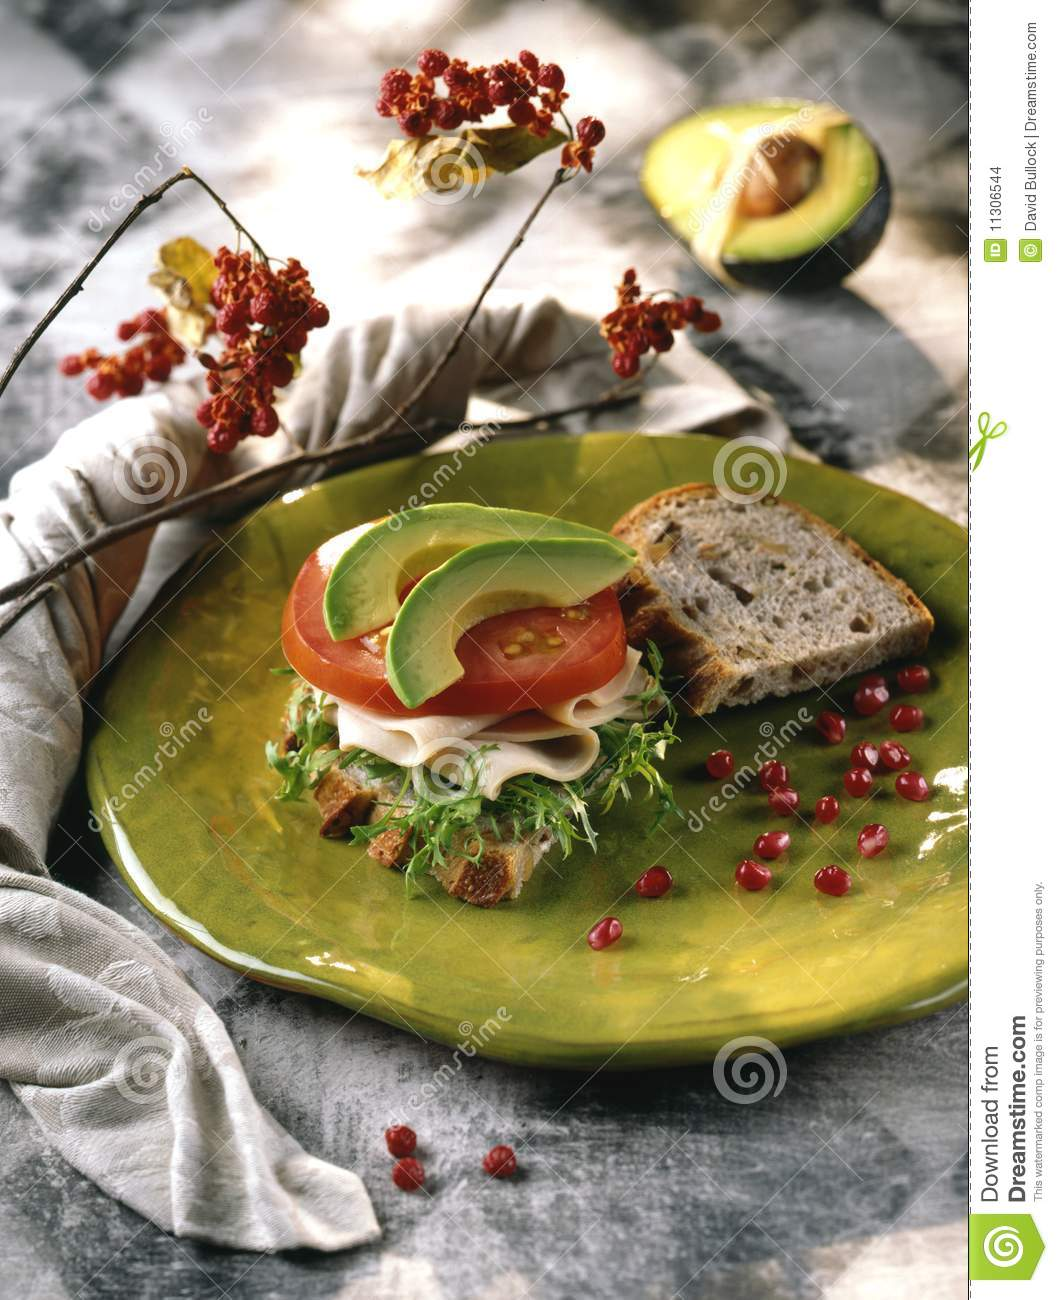 Turkey and avocado sandwich on green plate with arugula and tomato.